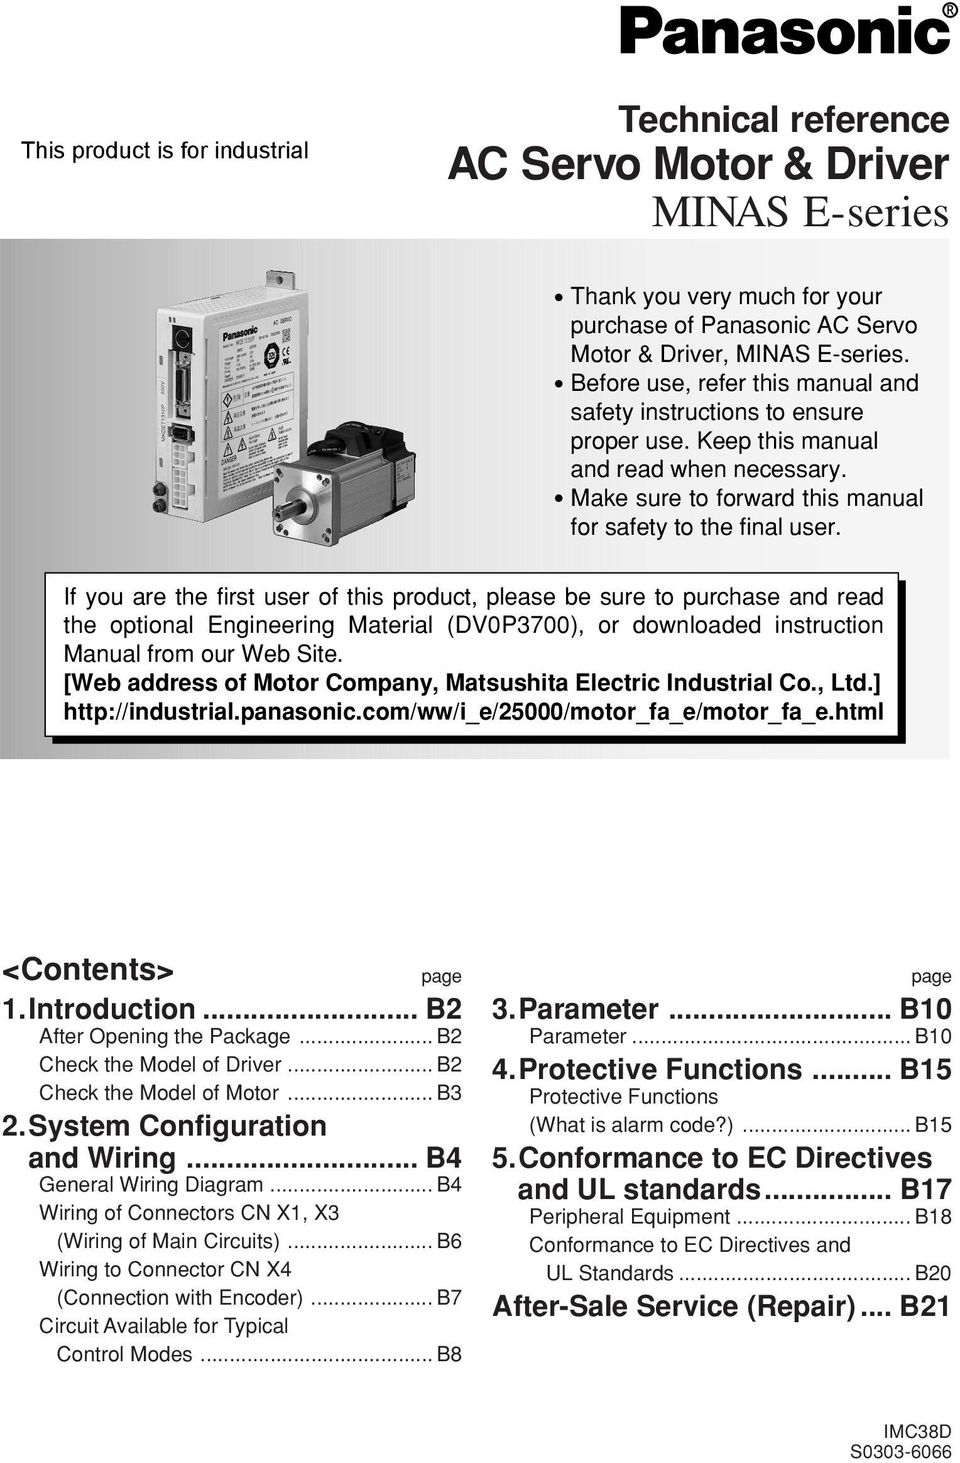 Technical Reference Ac Servo Motor Driver Minas E Series Pdf Picaxe Colour Sensor Page1 6761284 Datasheet Of If You Are The First User This Product Please Be Sure To Purchase And